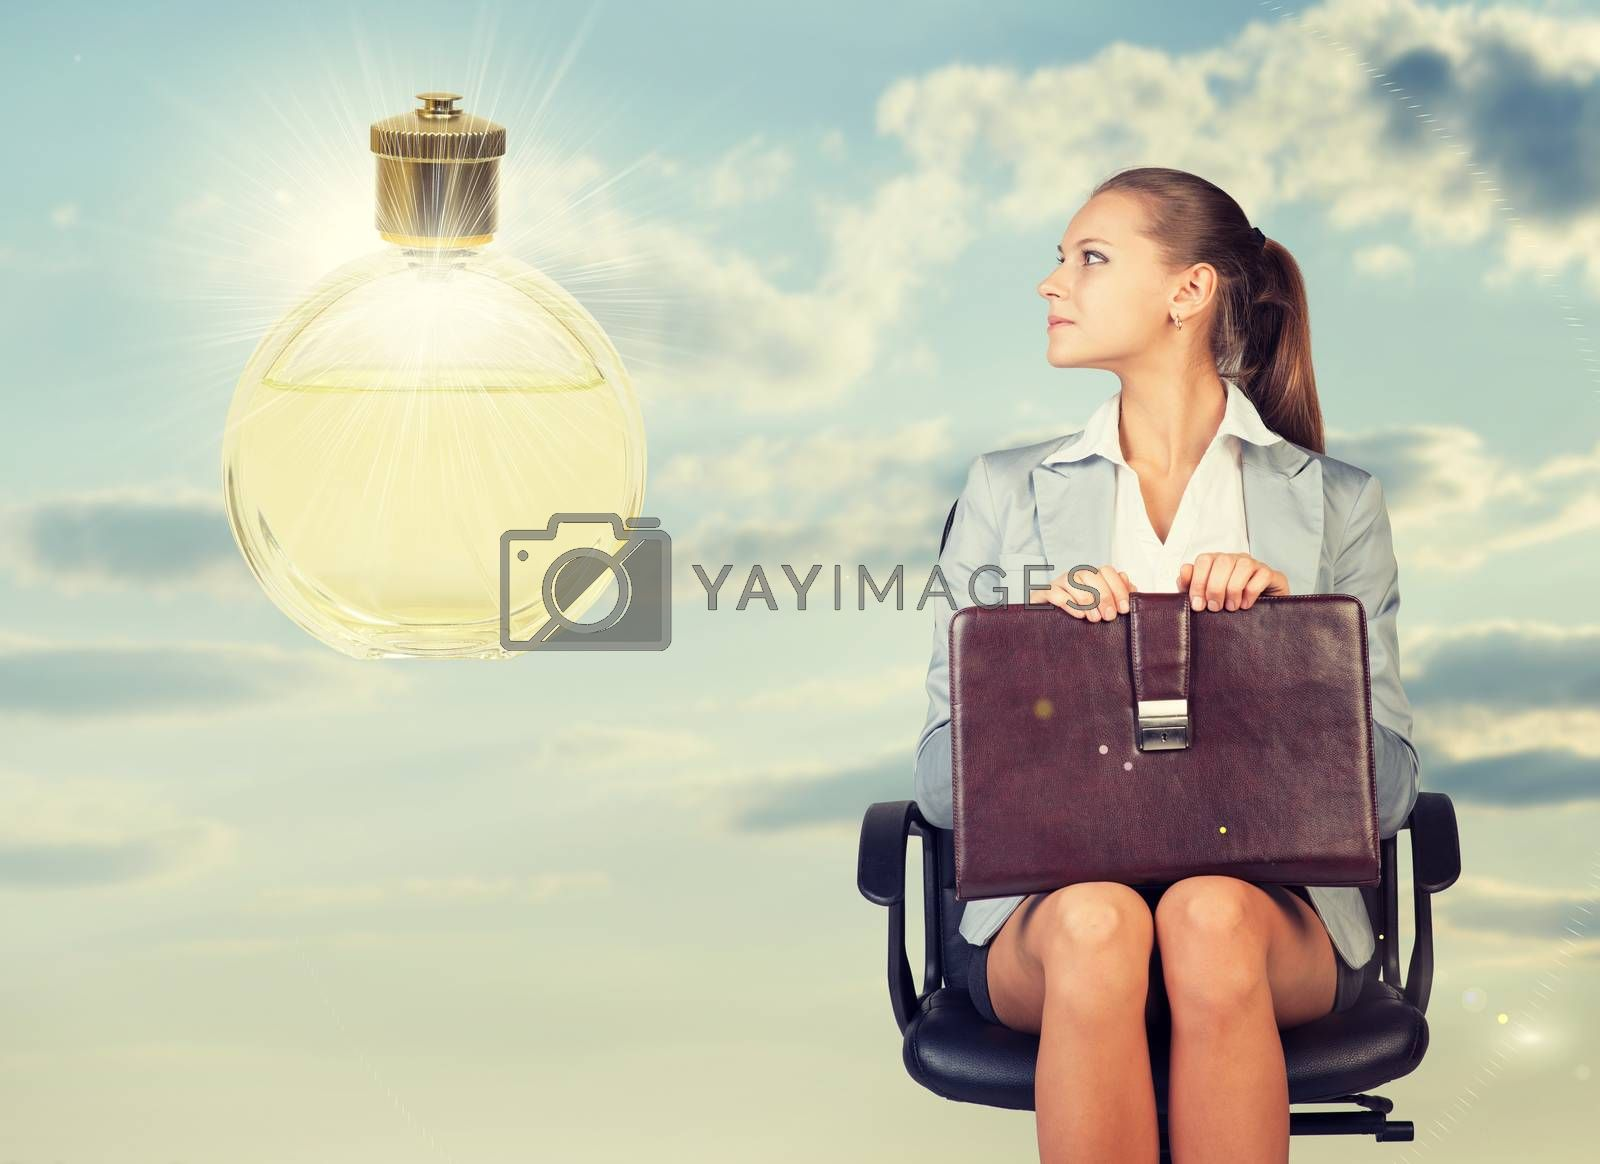 Business woman in skirt, blouse and jacket, sitting on chair and holding briefcase imagines perfume. Against background of sky and clouds